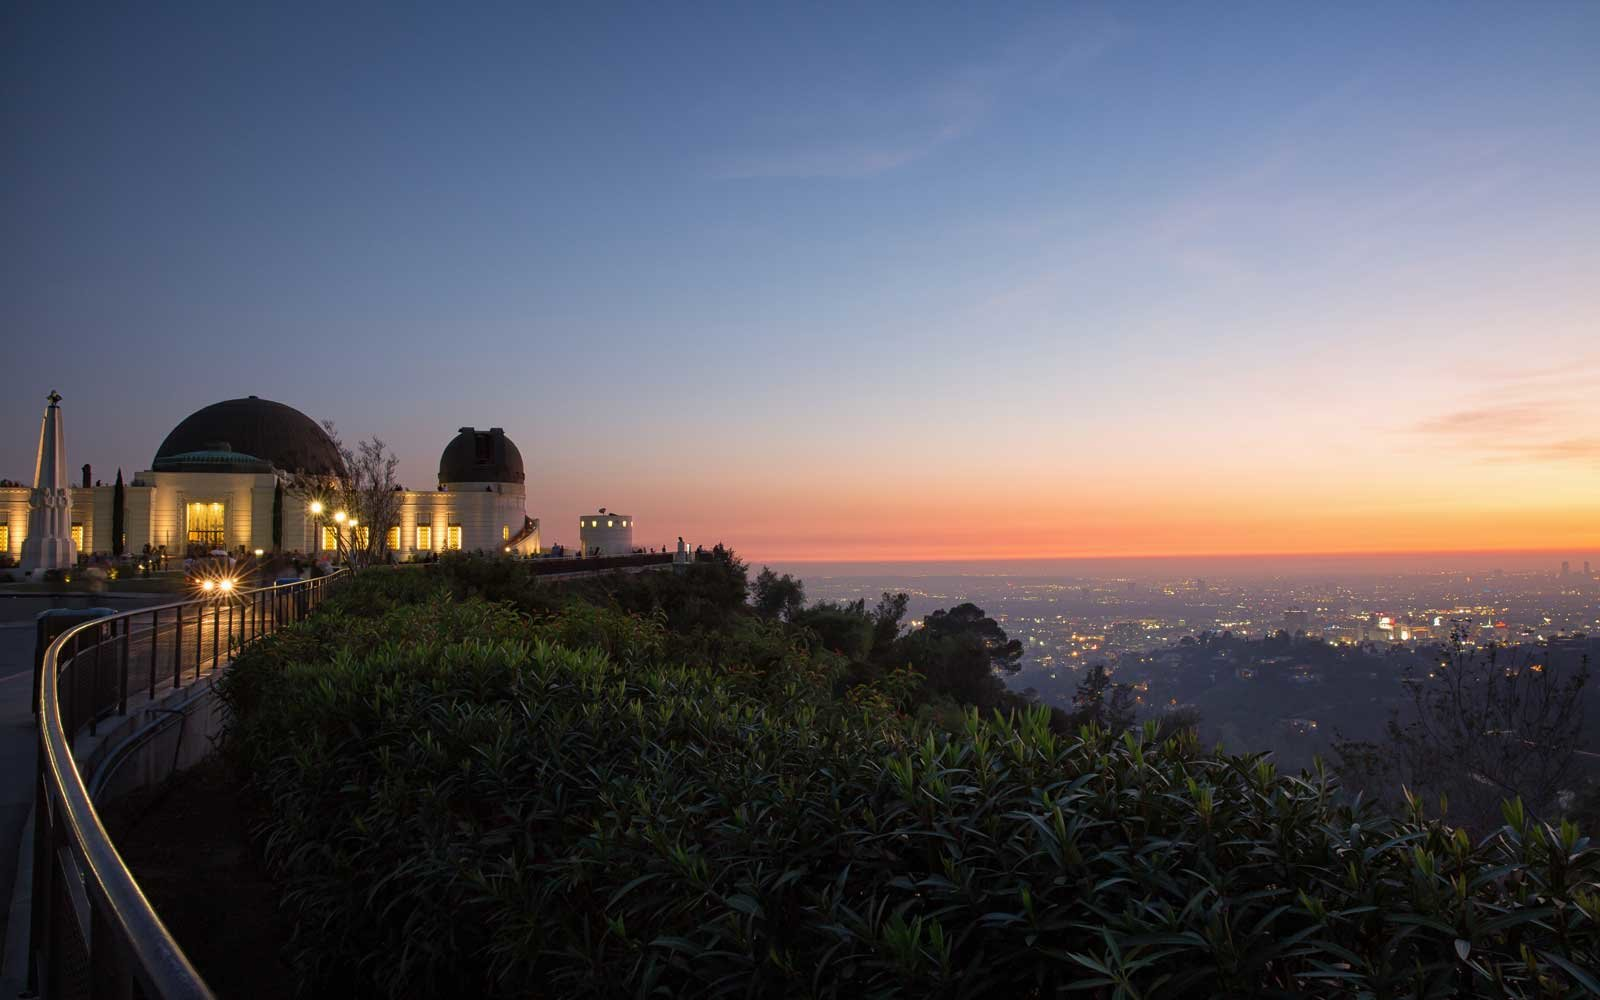 california-griffith-observatory-ROMSTATE0117.jpg